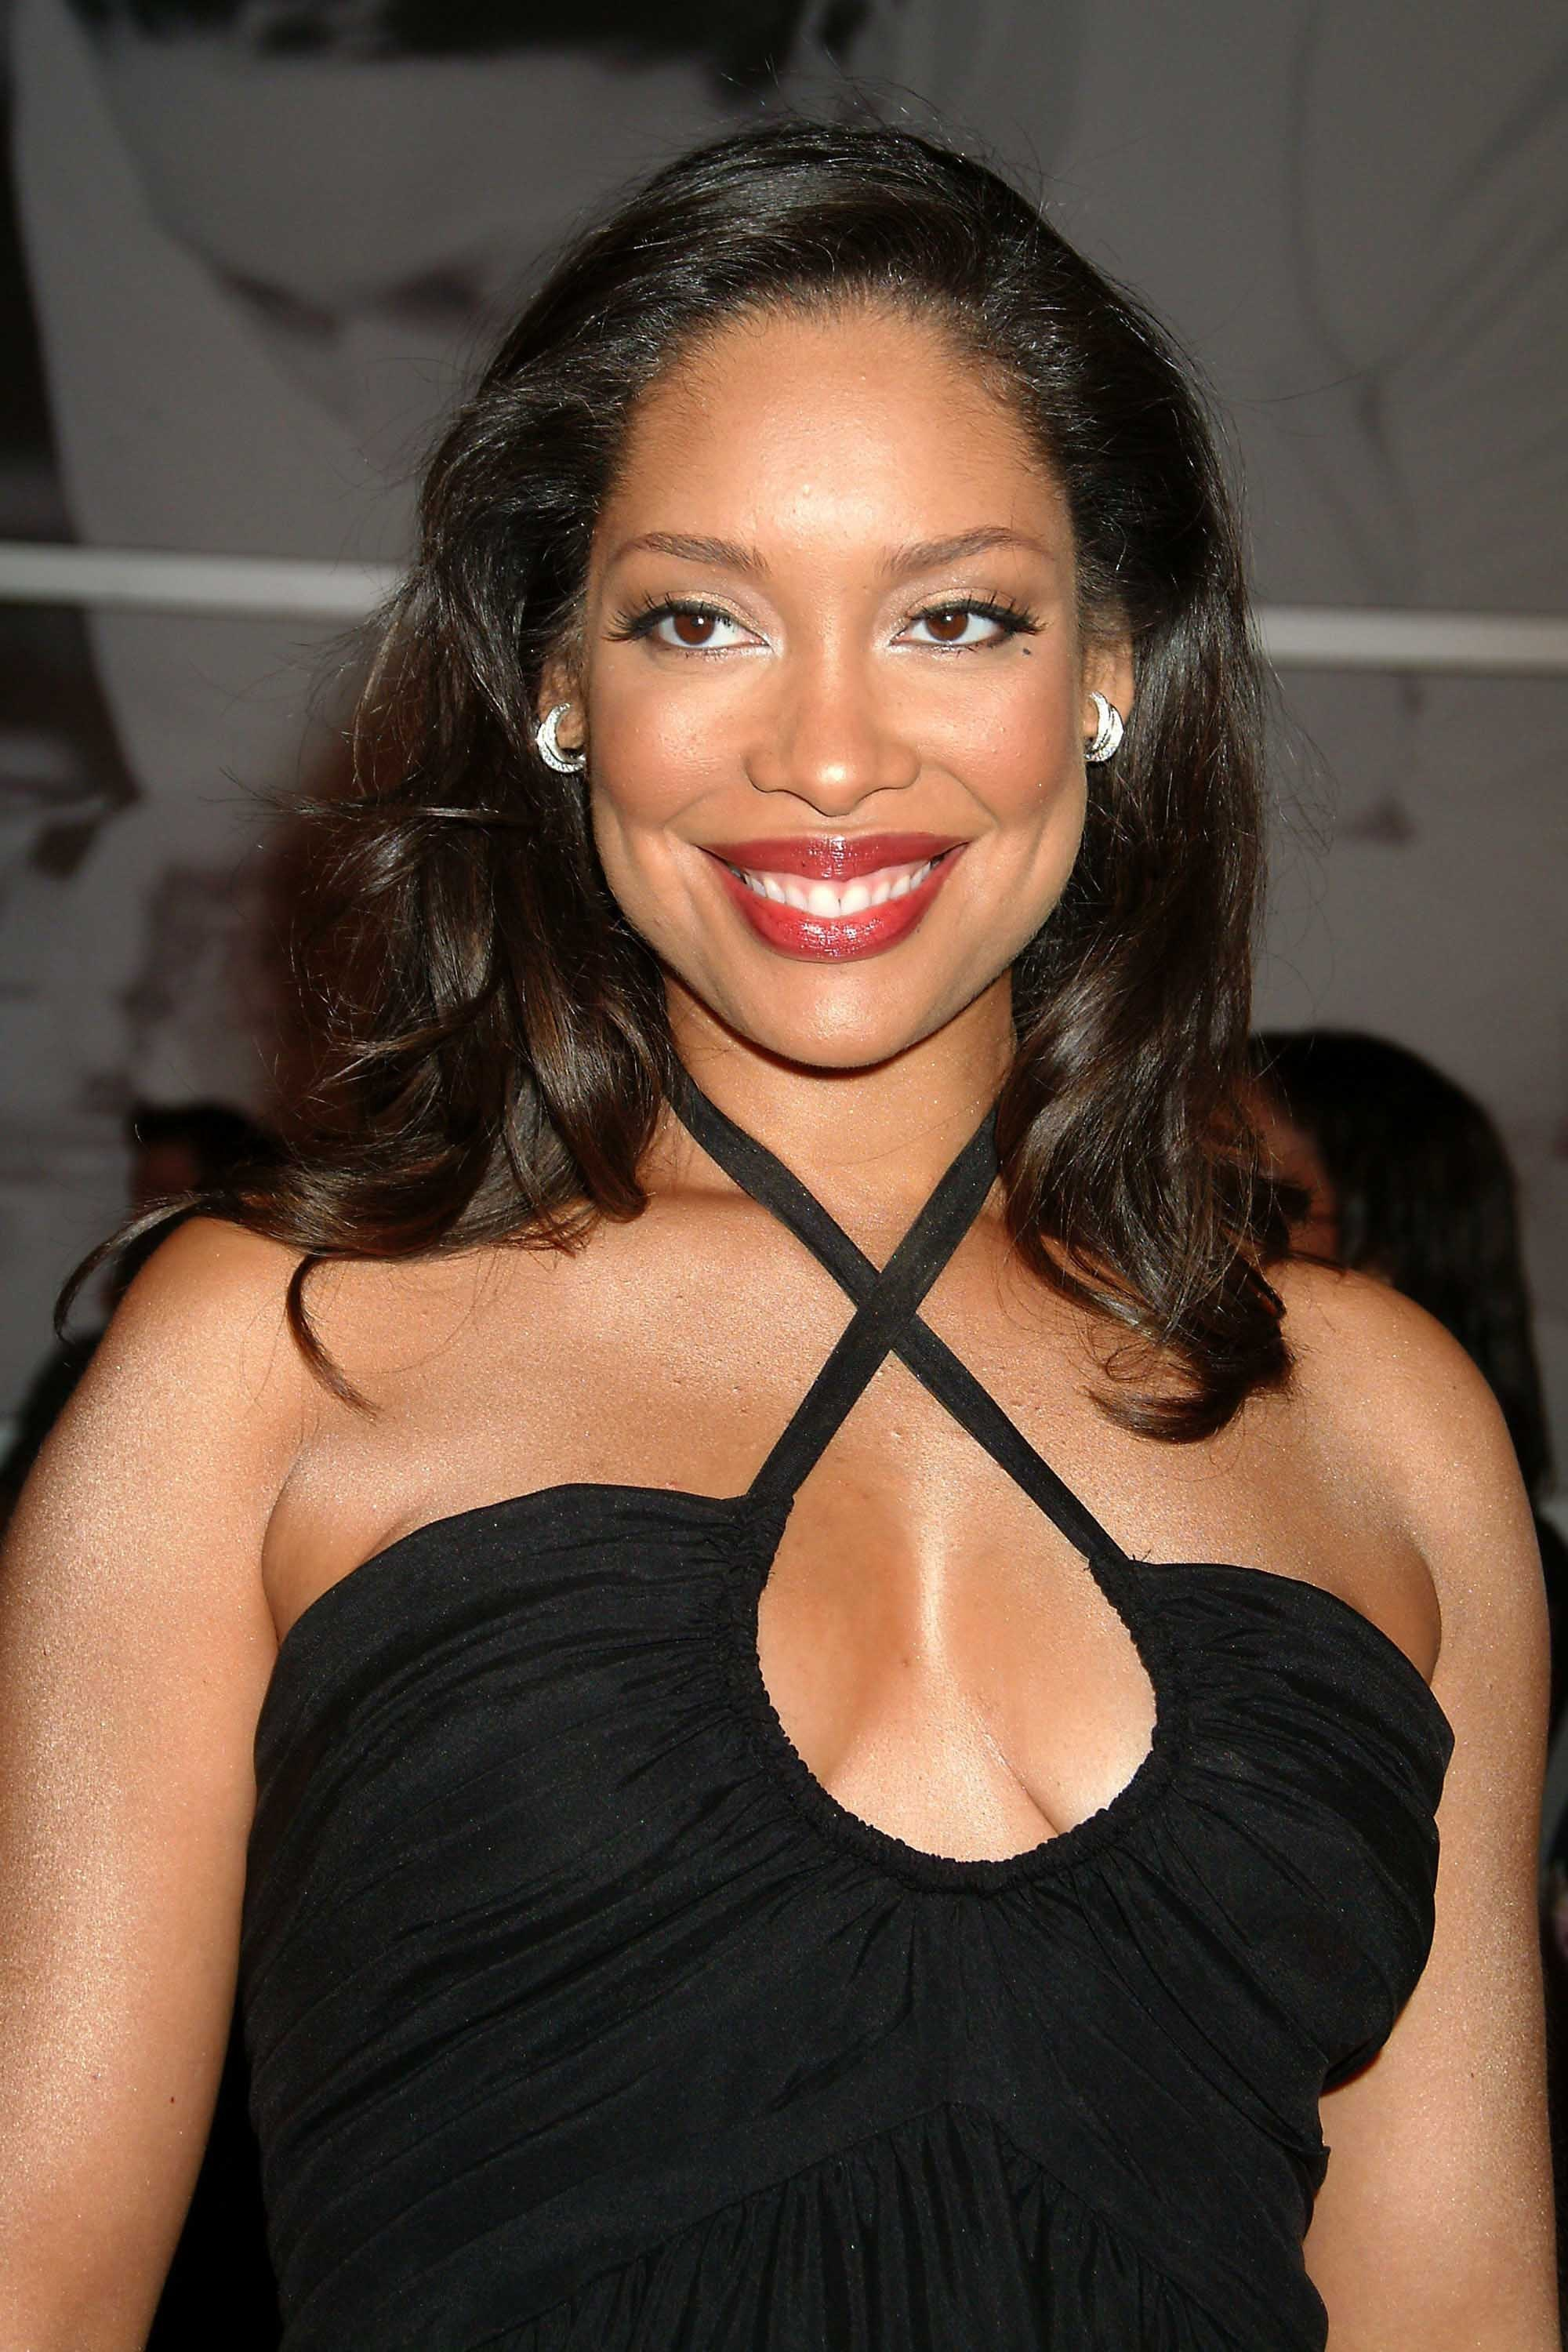 Naked pic gina torres what